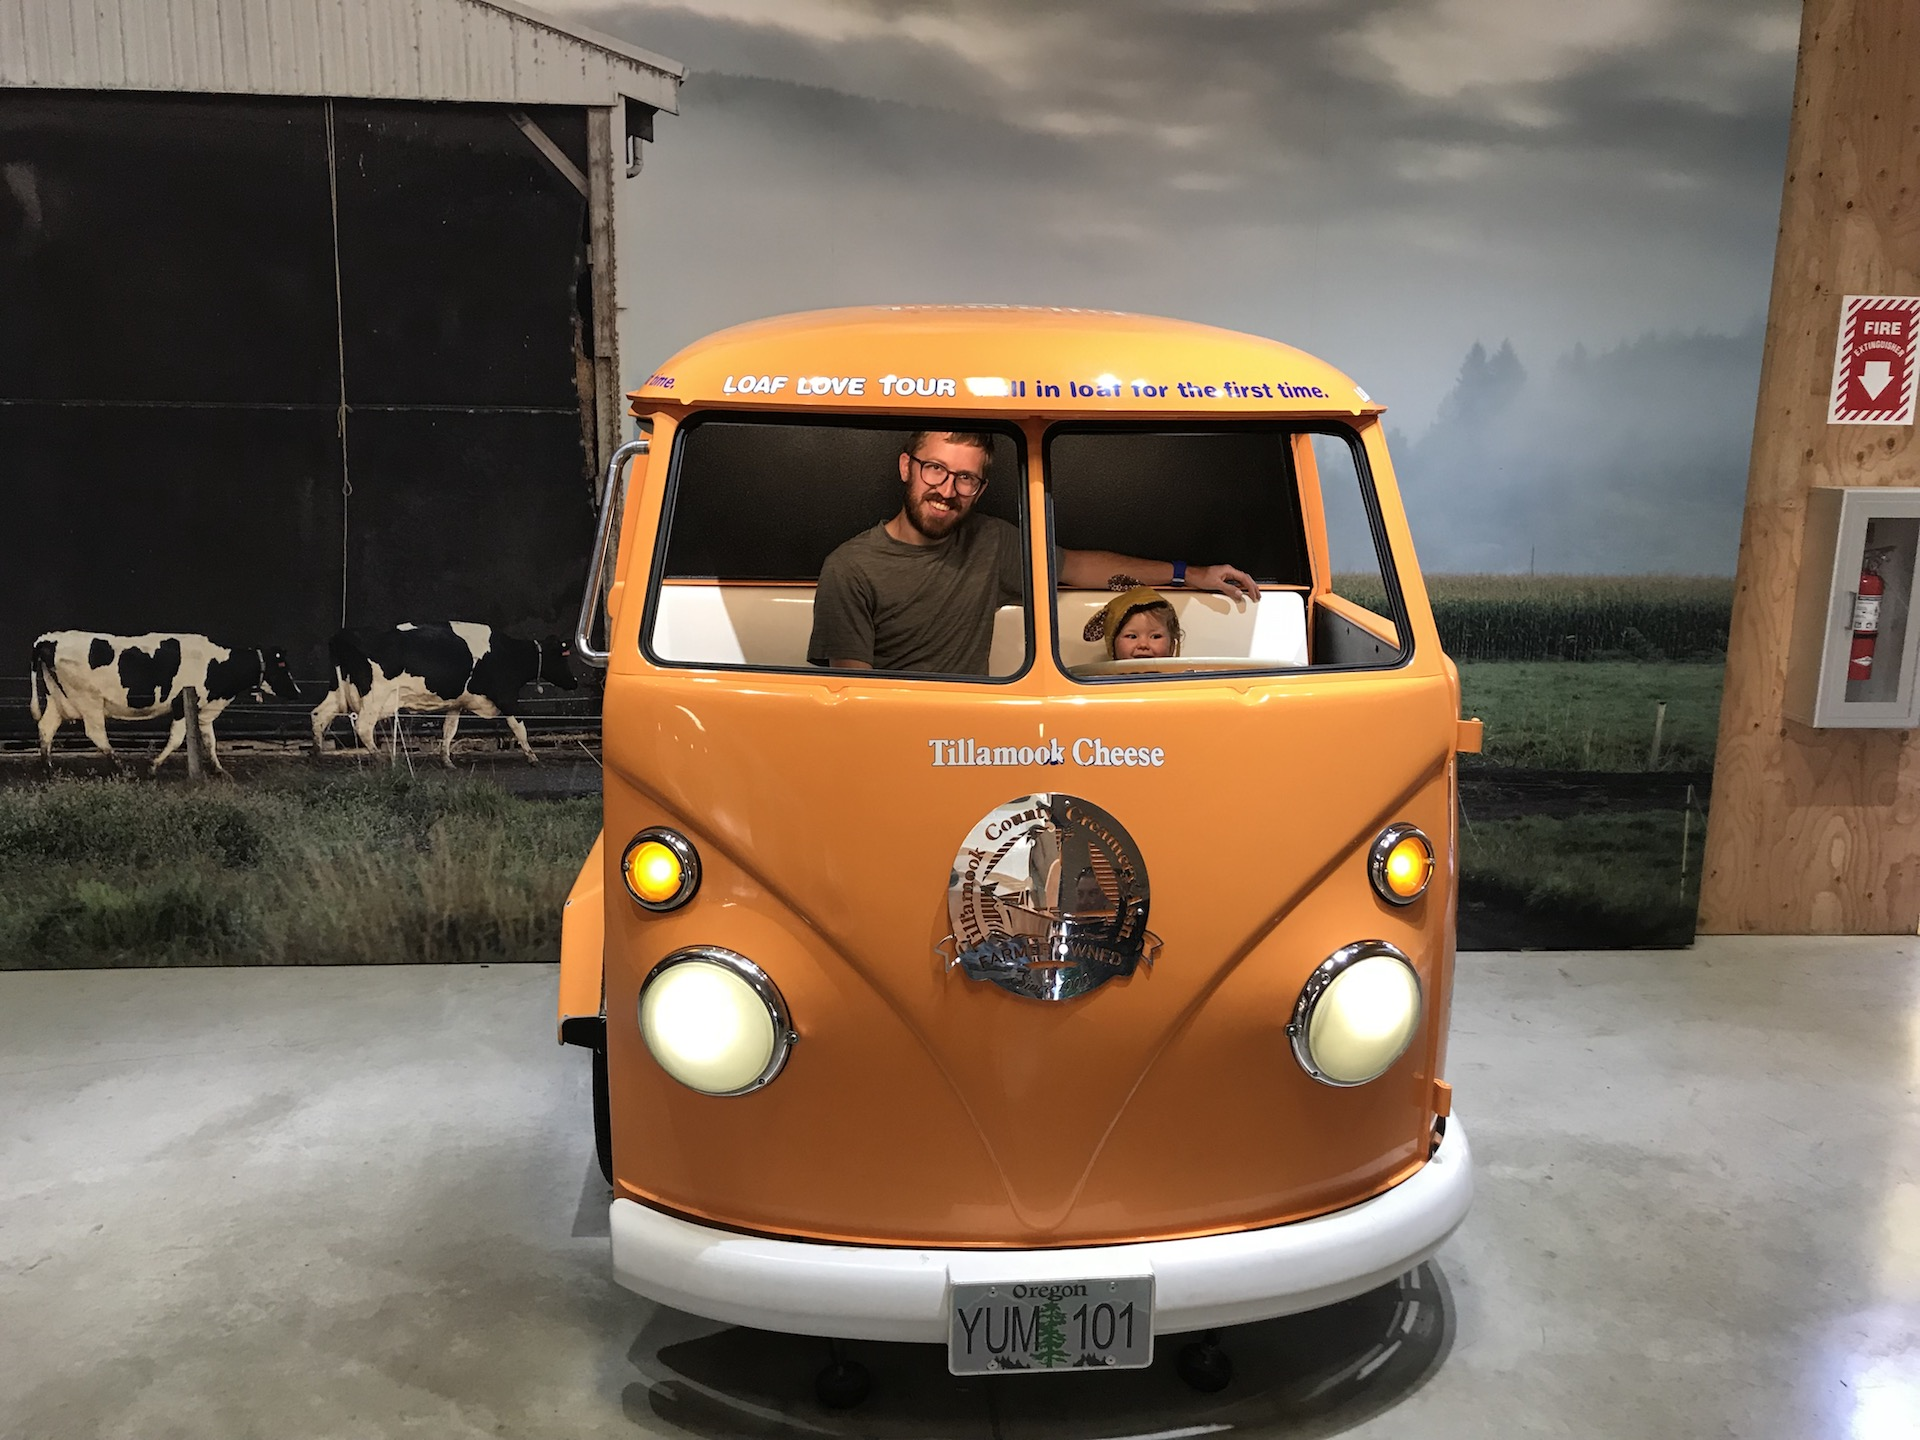 The Tillamook Cheese factory and VW bus photo prop